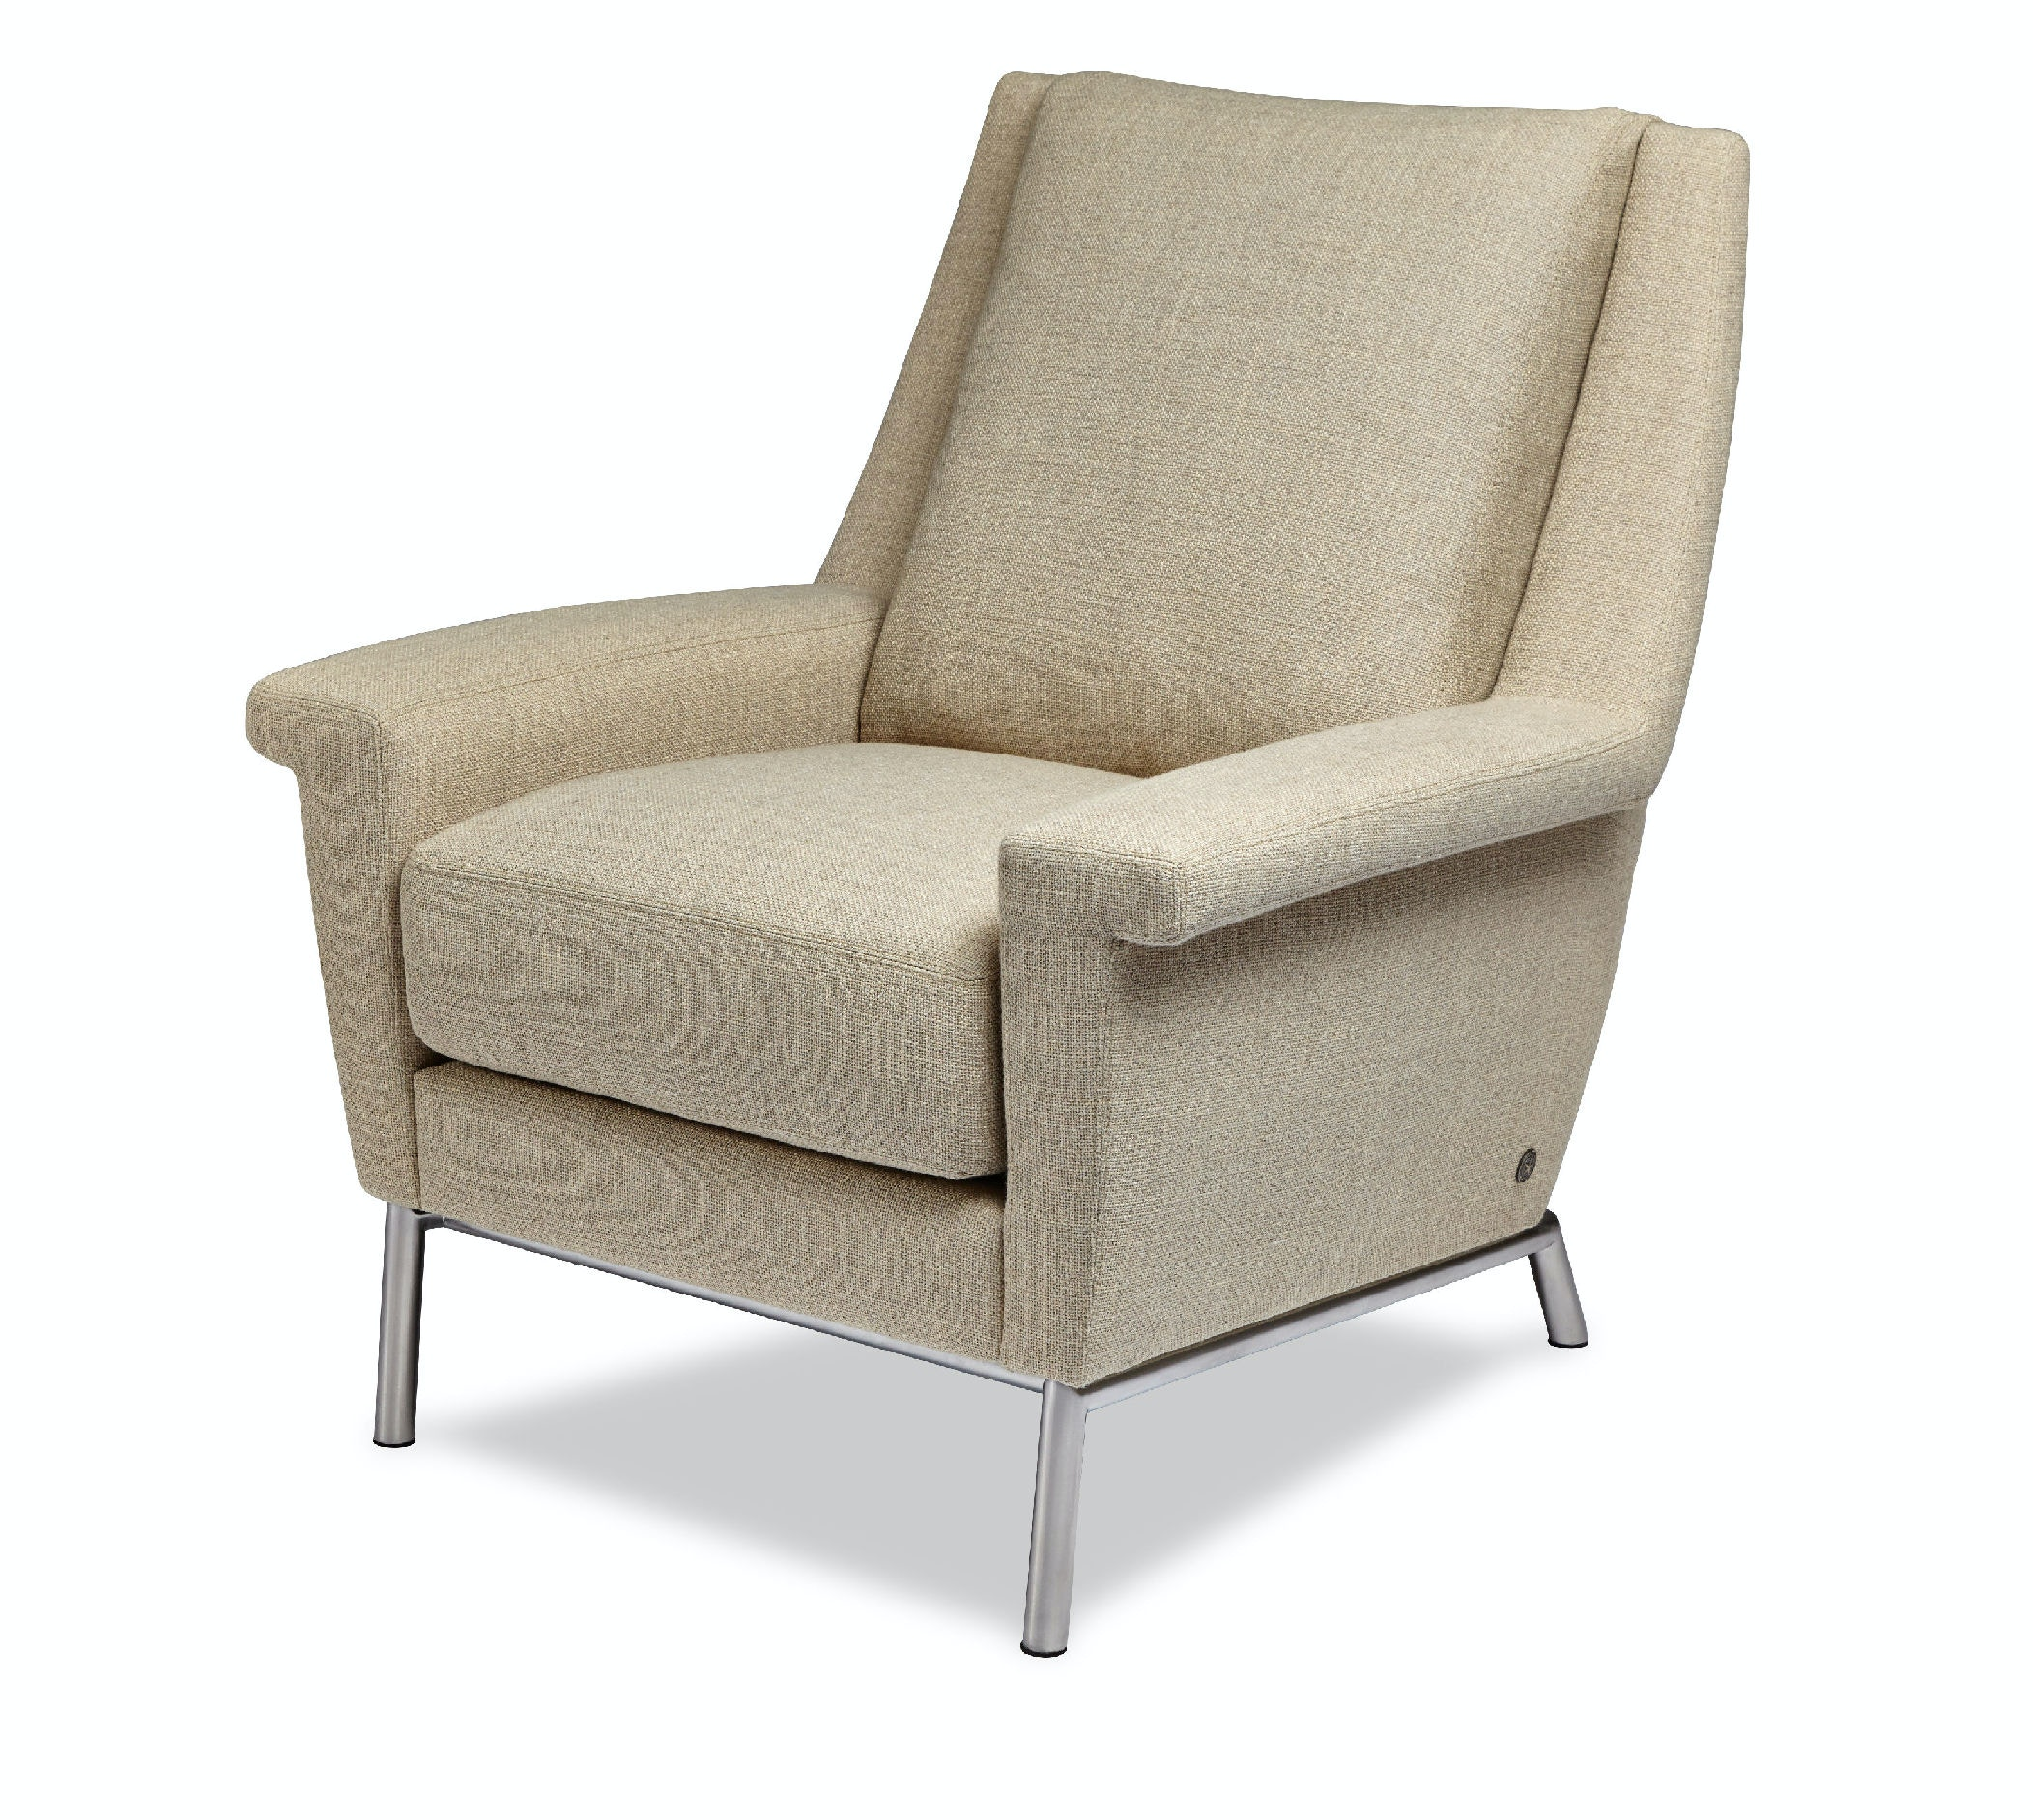 thomasville leather chair curved corner american living room hrv chr st urban interiors at